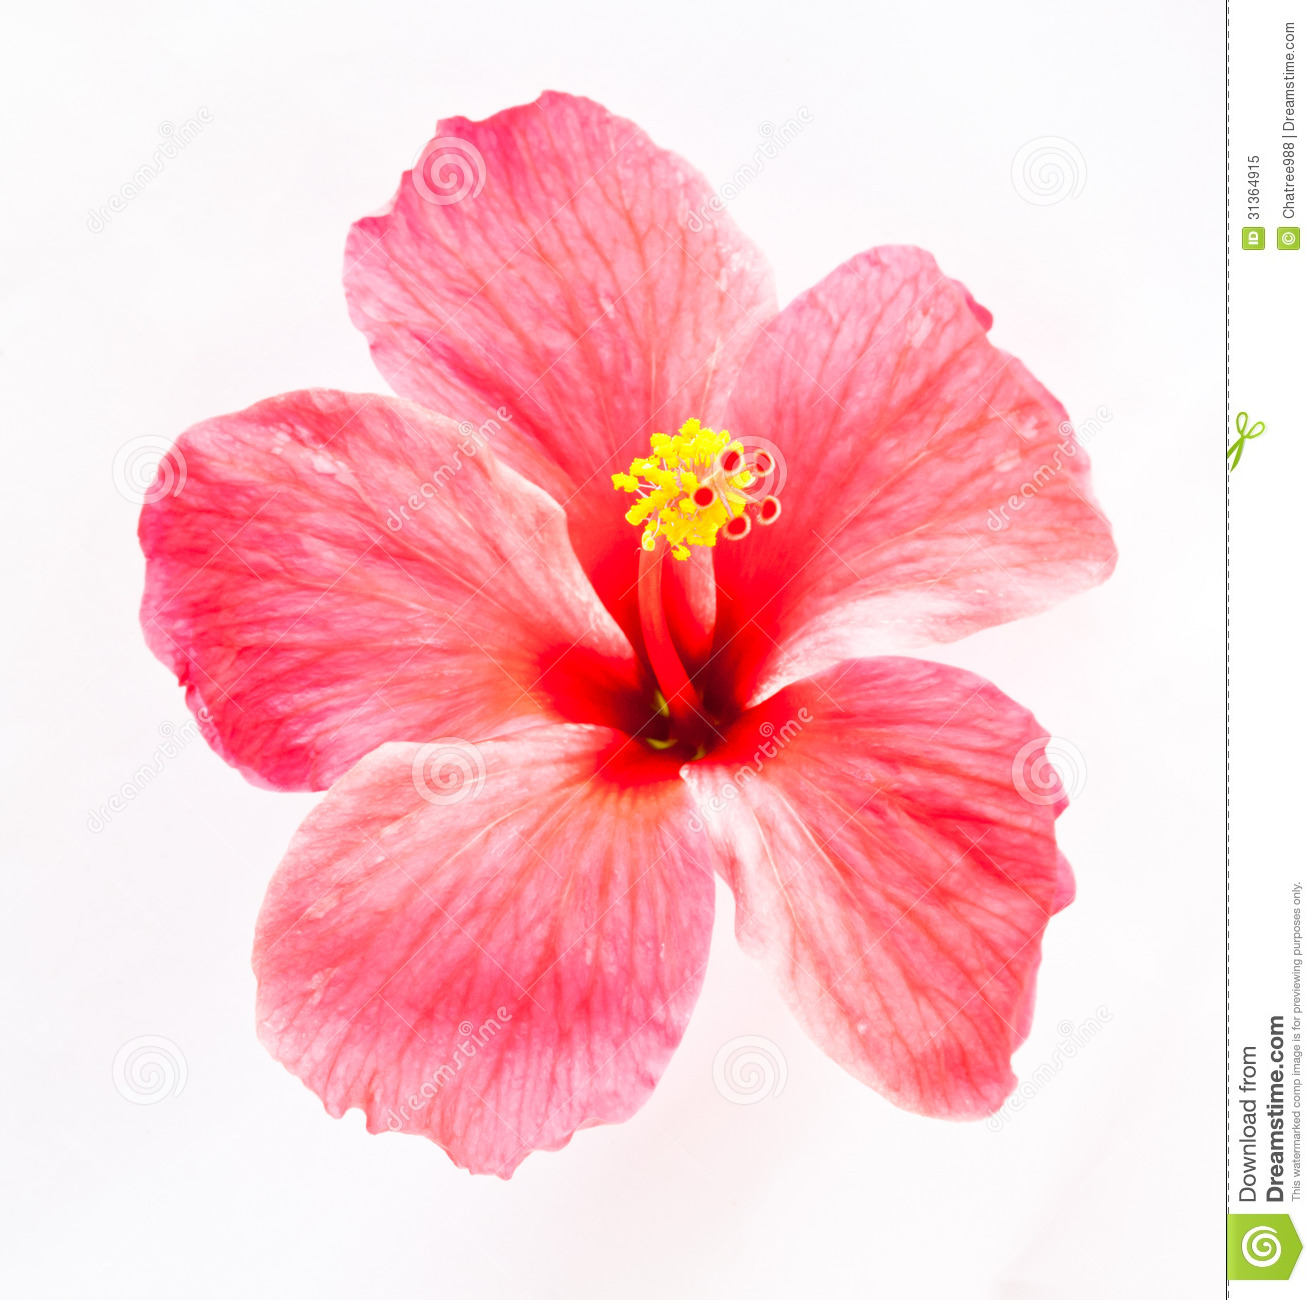 Hibiscus Flower Royalty Free Stock Photo - Image: 31364915